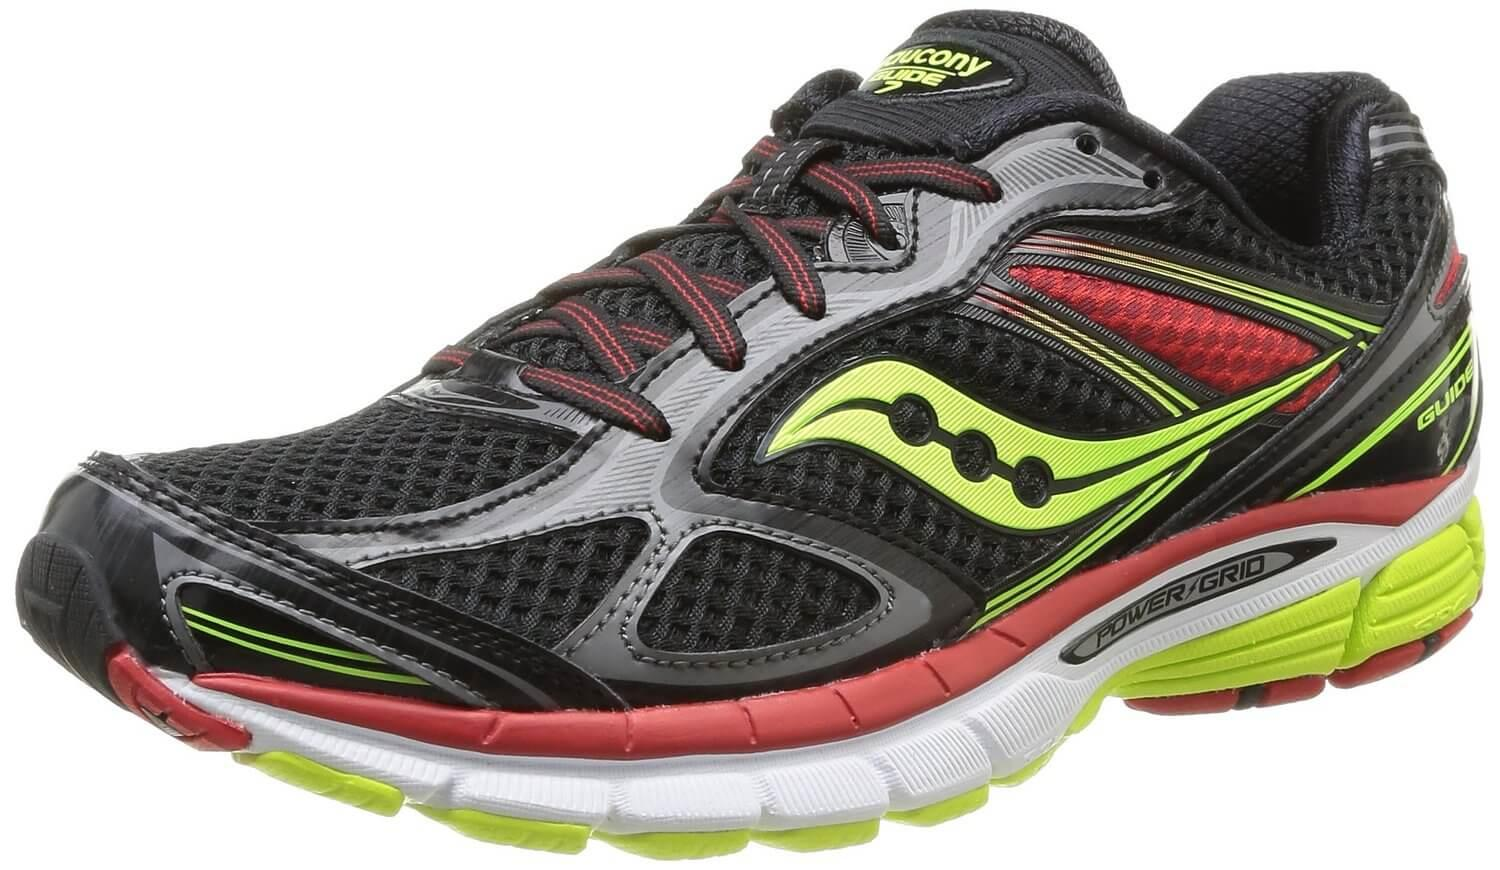 Stability, comfort, and style are all guaranteed with the Saucony Guide 7.